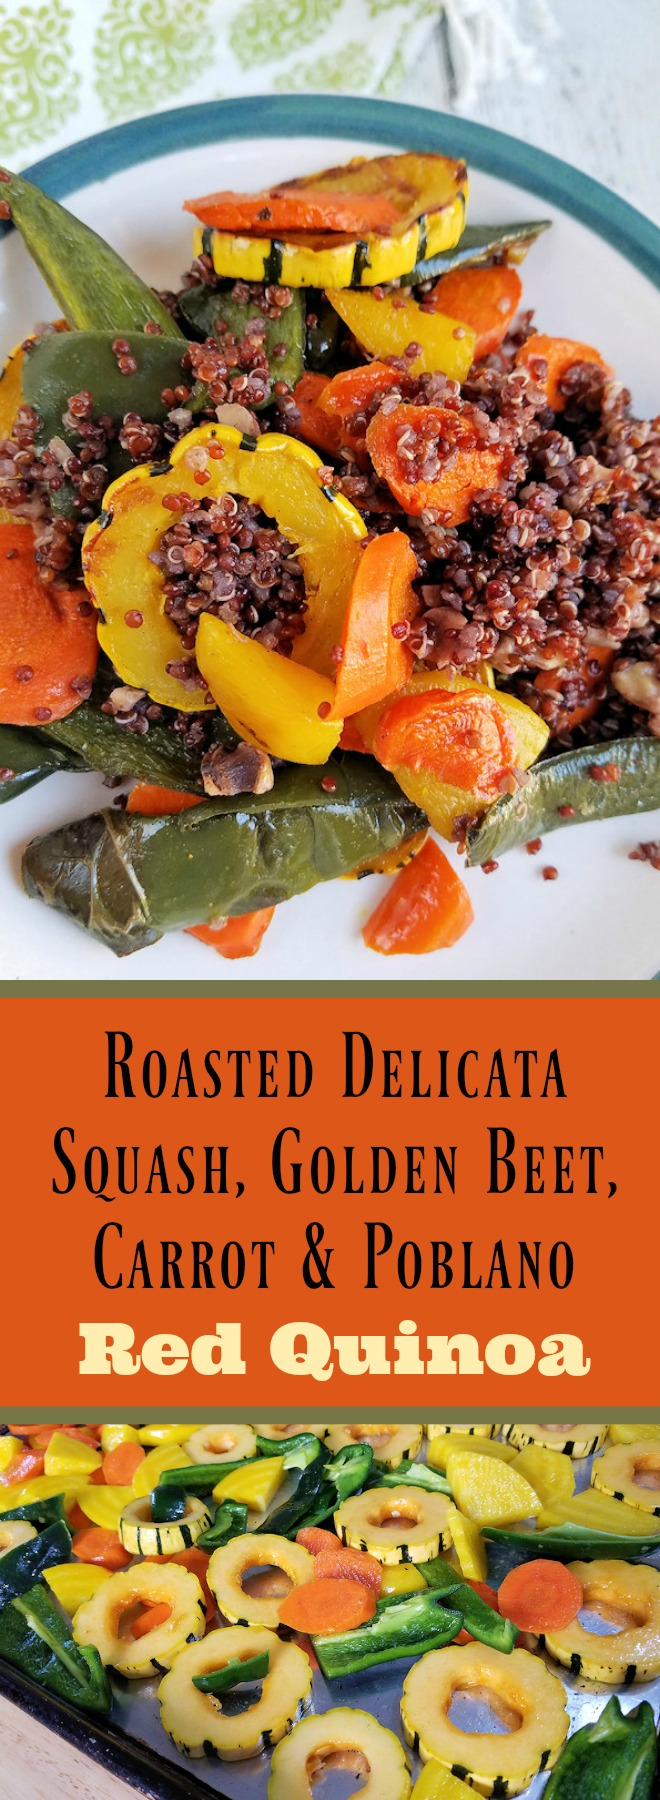 Roasted Delicata Squash, Golden Beet, Carrot & Poblano Red Quinoa  Recipe